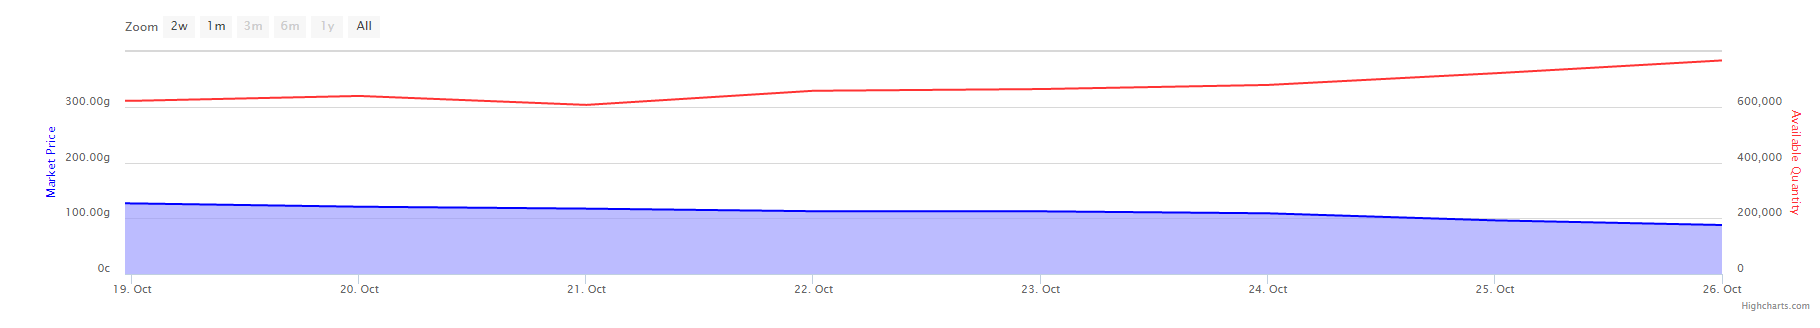 US Starlight Rose amounts and price, last 7 days. Taken from www.theunderminejournal.com